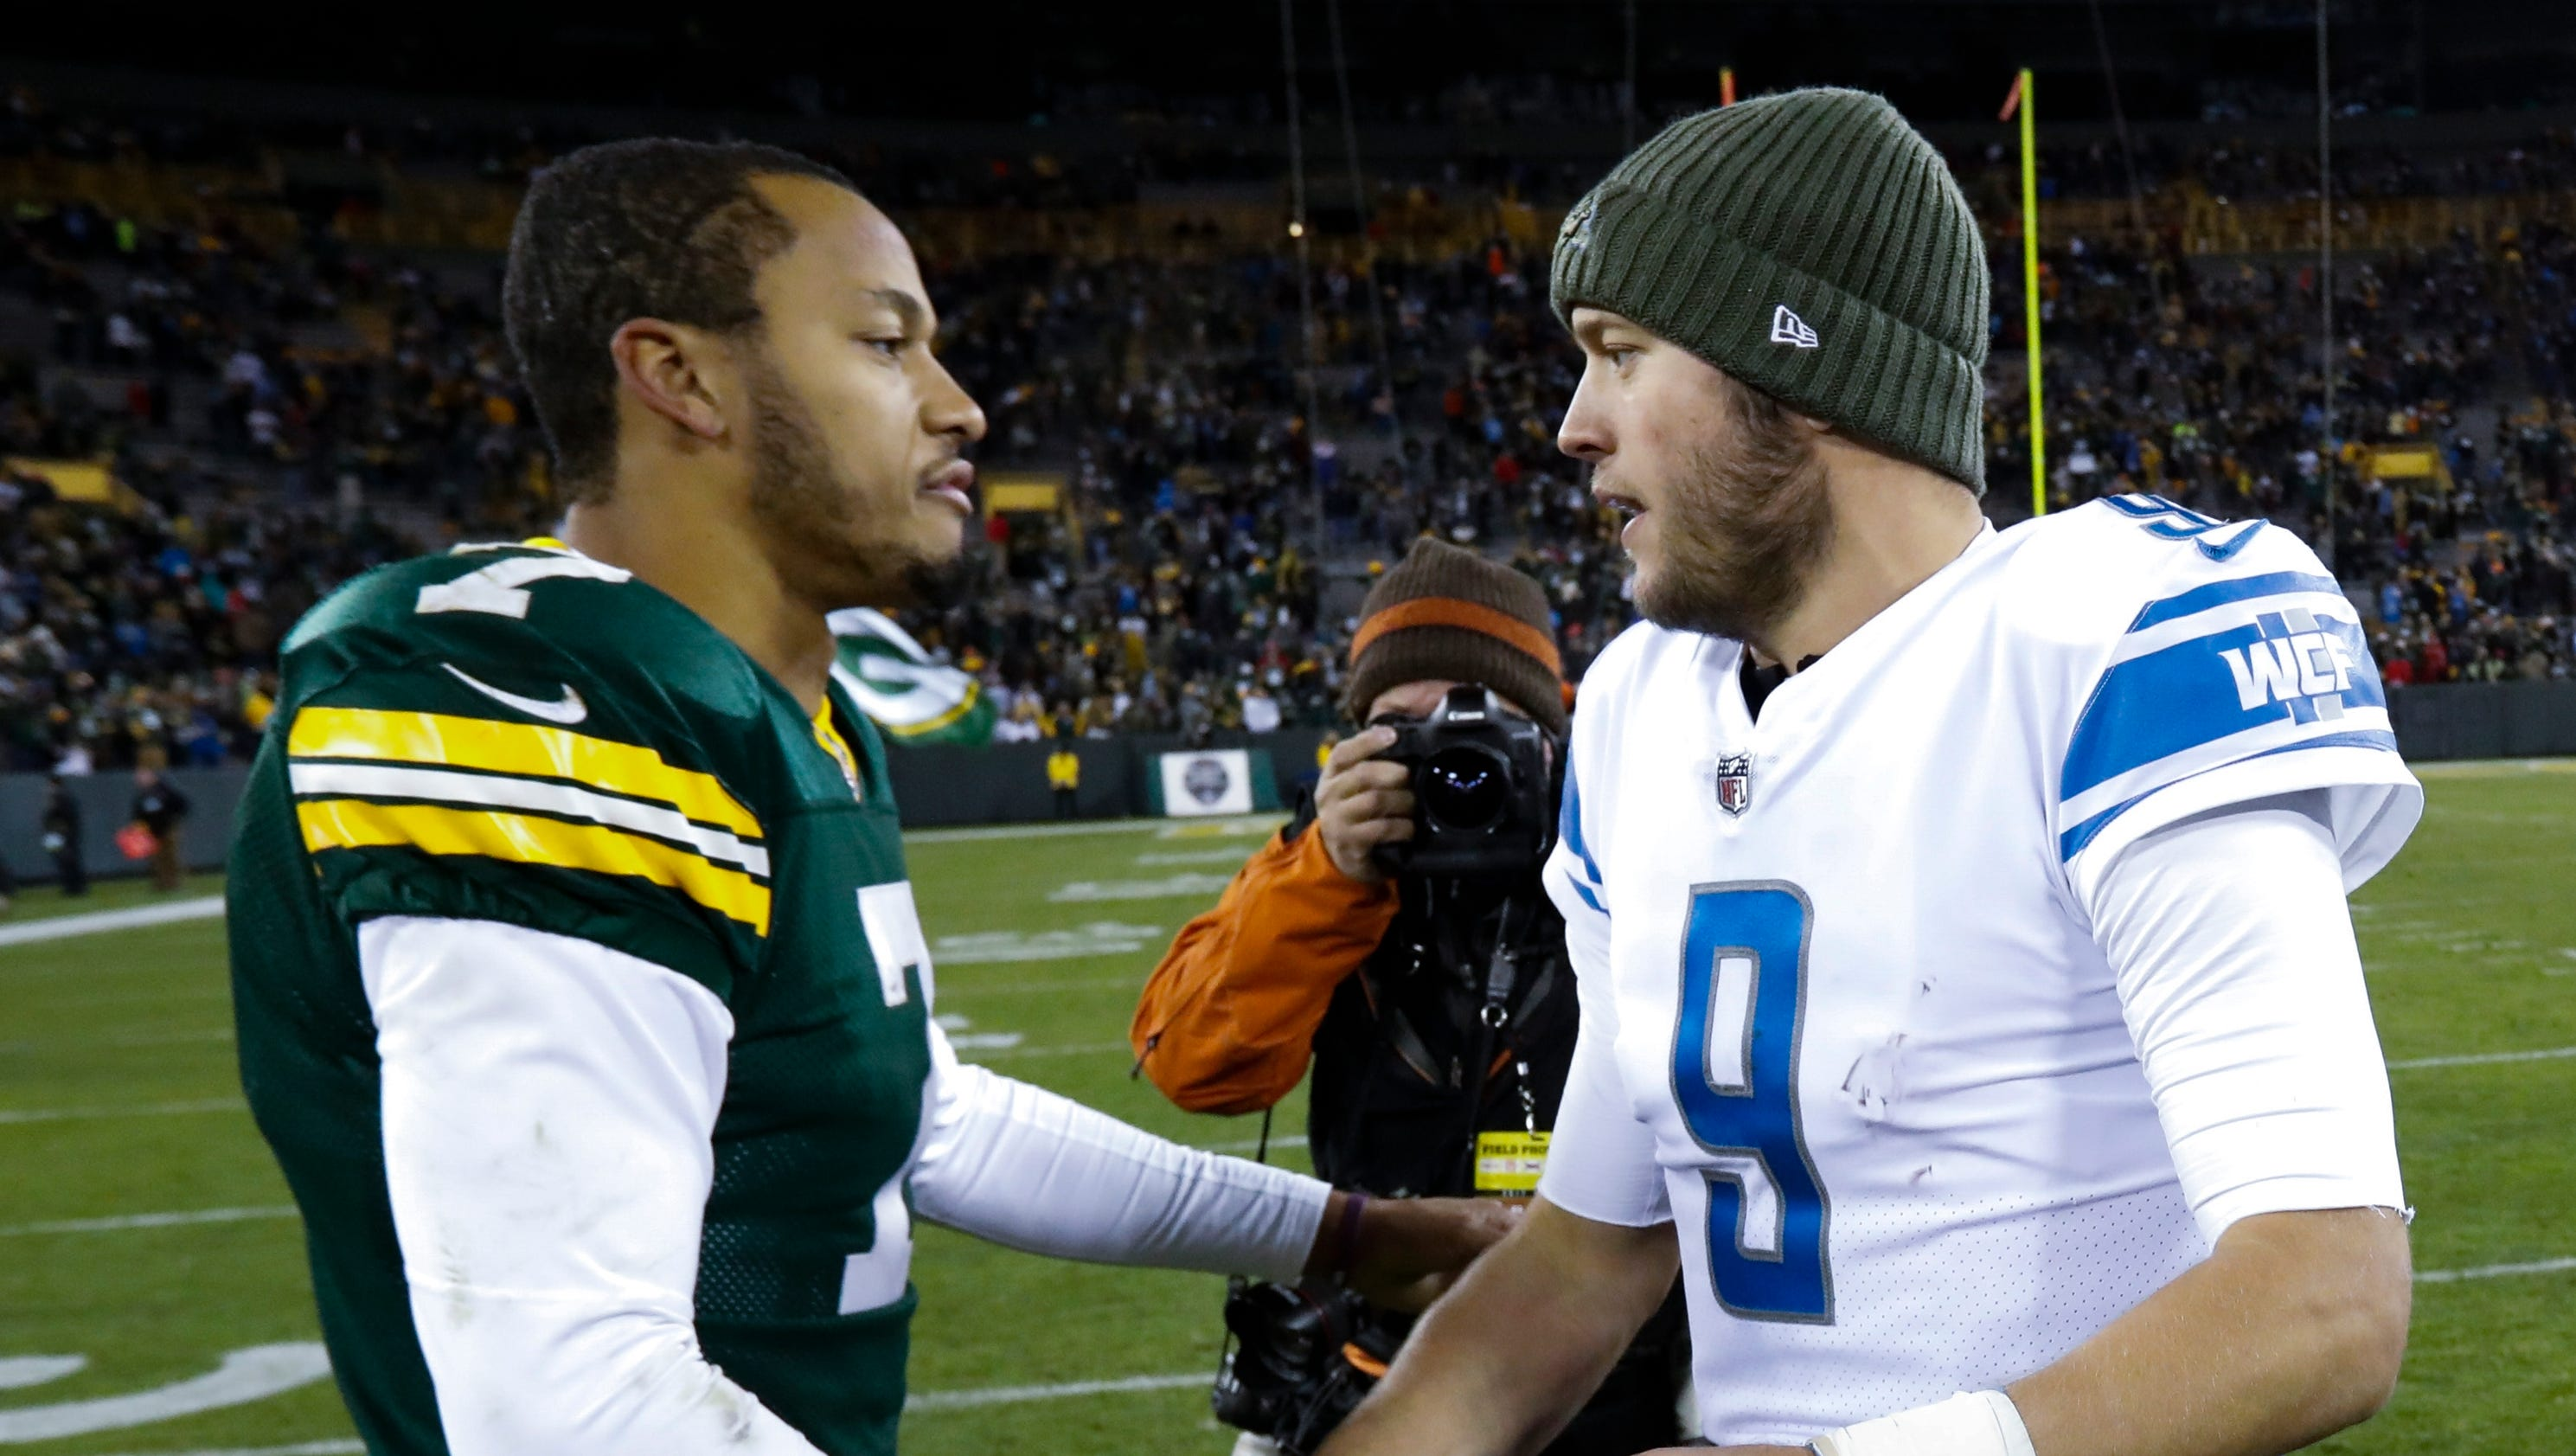 636456090005725367-ap-lions-packers-football-wi-2-